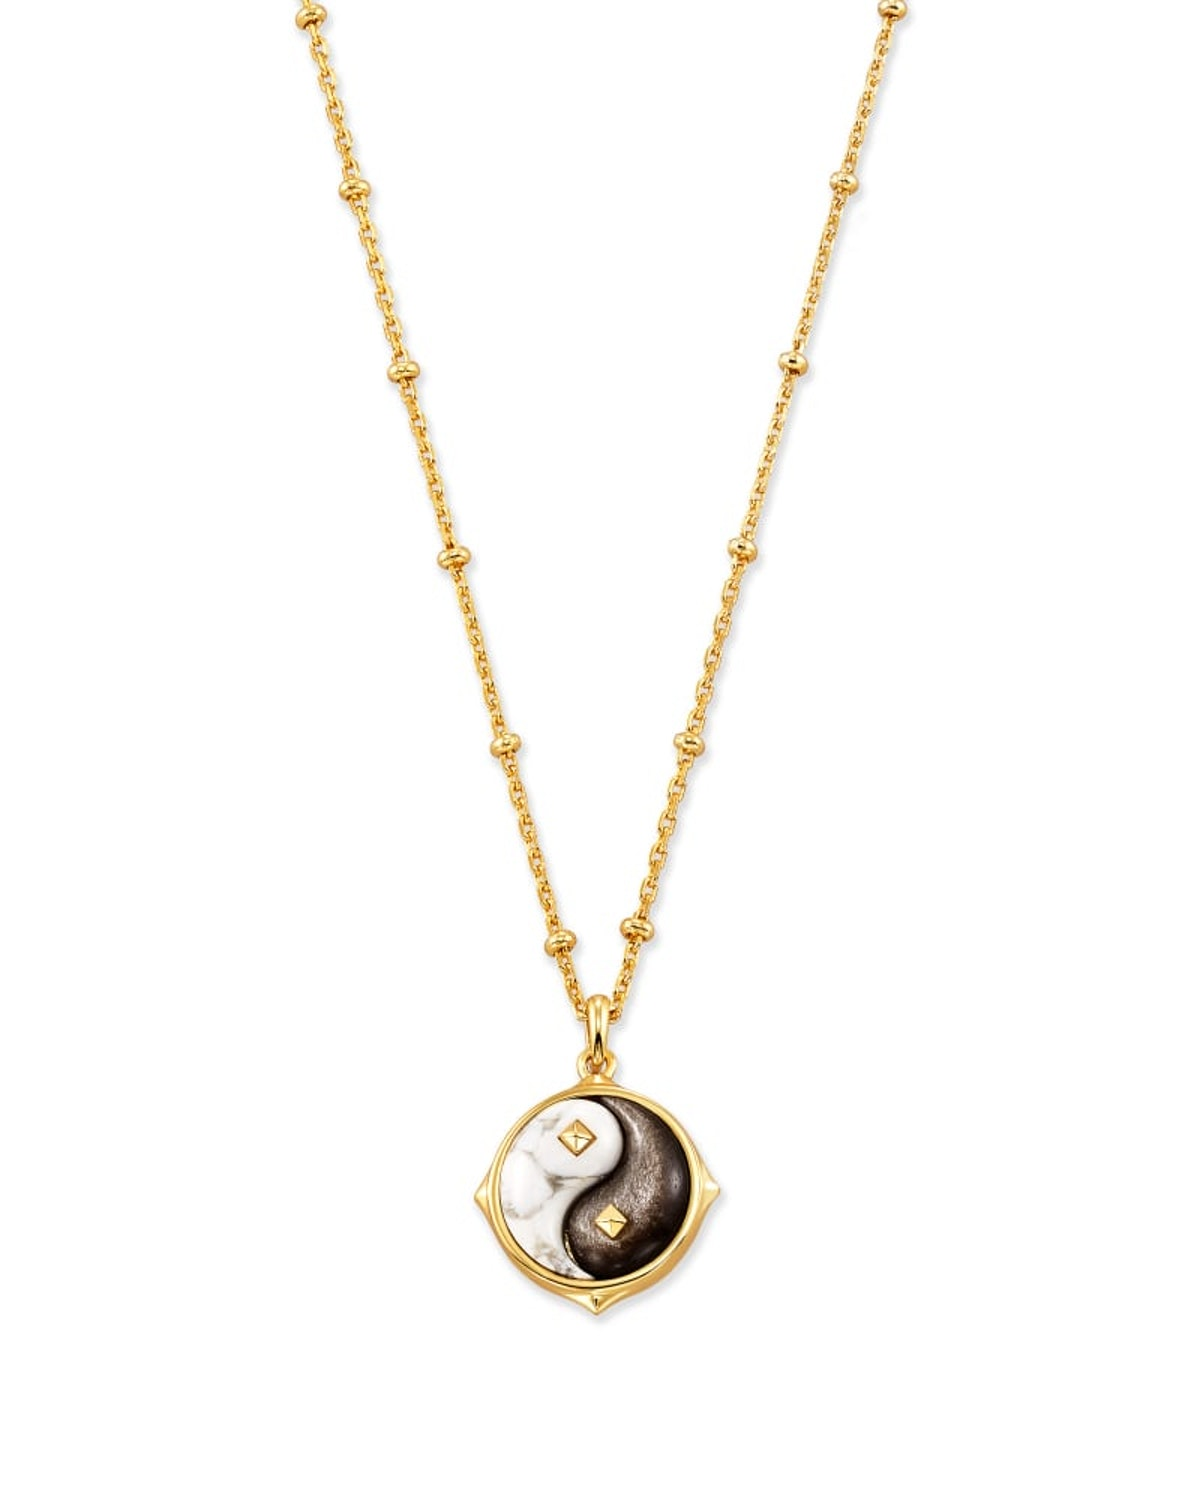 Yin Yang Gold Pendant Necklace In Neutral Mix